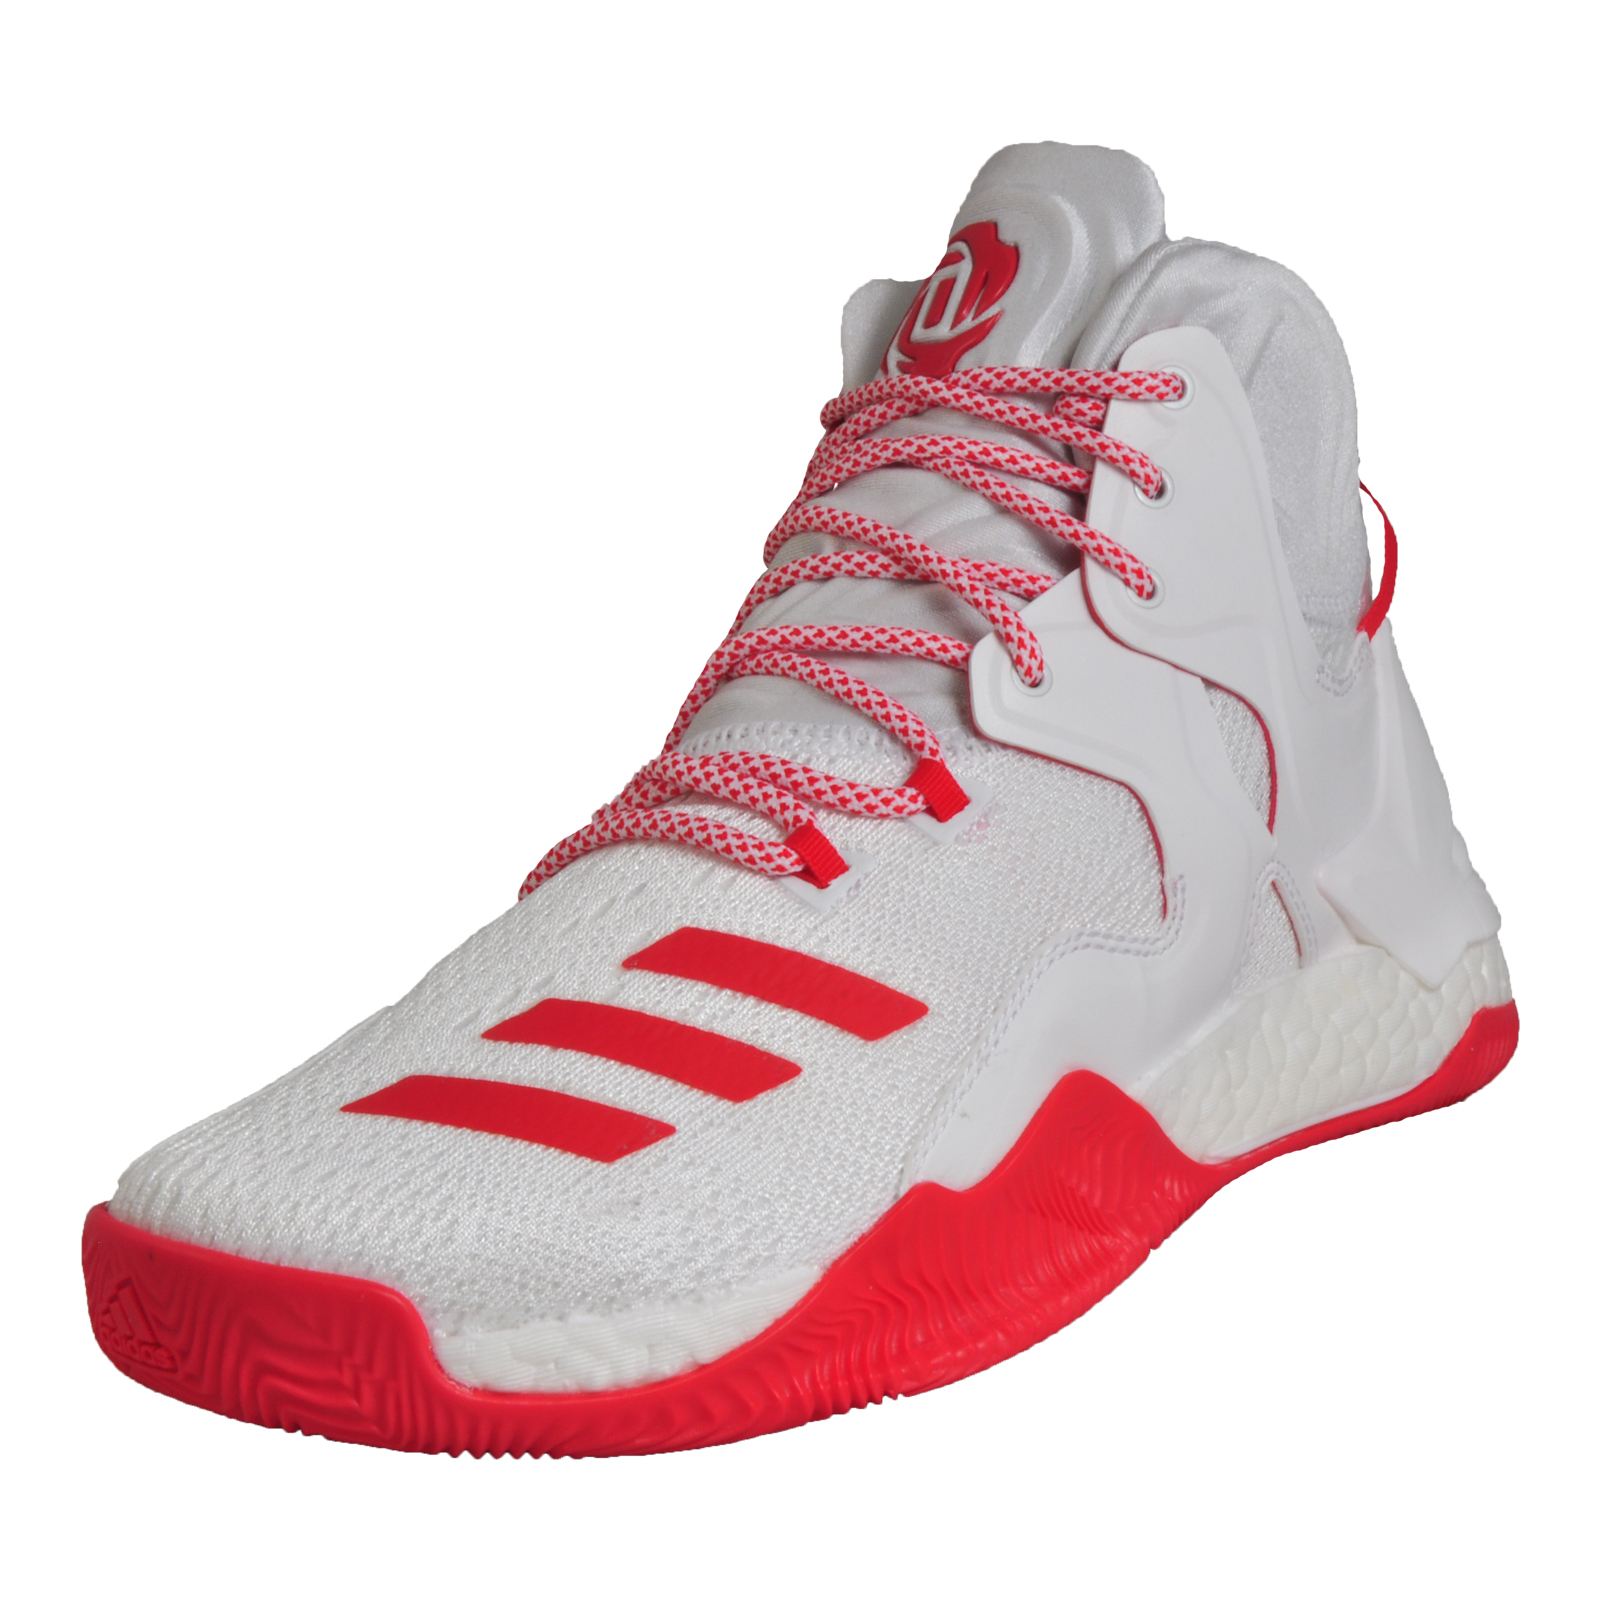 reputable site 2119a 5daf6 Adidas Mens Derrick Rose D Rose 7 Boost Premium Basketball Trainers White